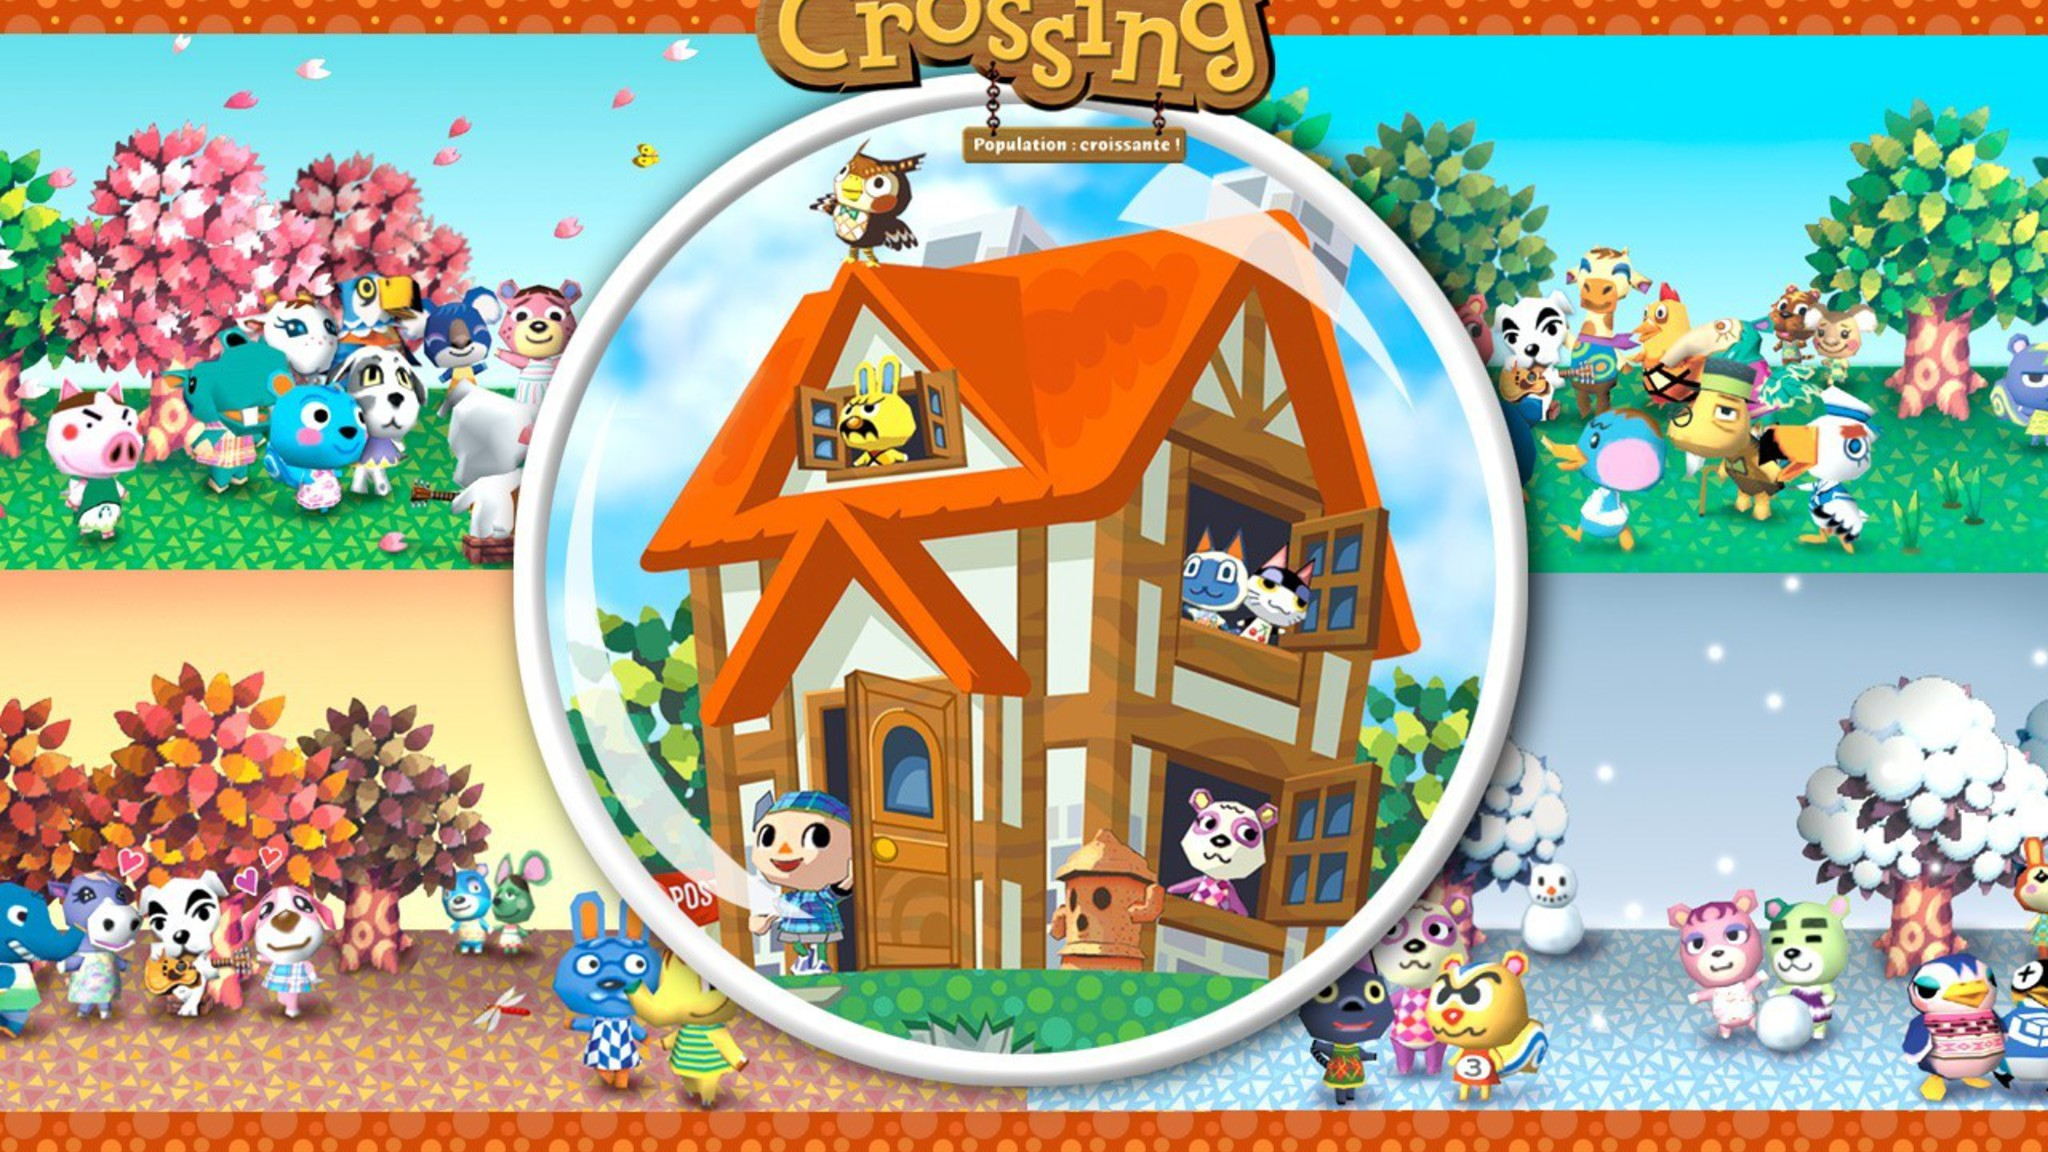 Nintendo gamecube animal crossing wallpaper | AllWallpaper ...